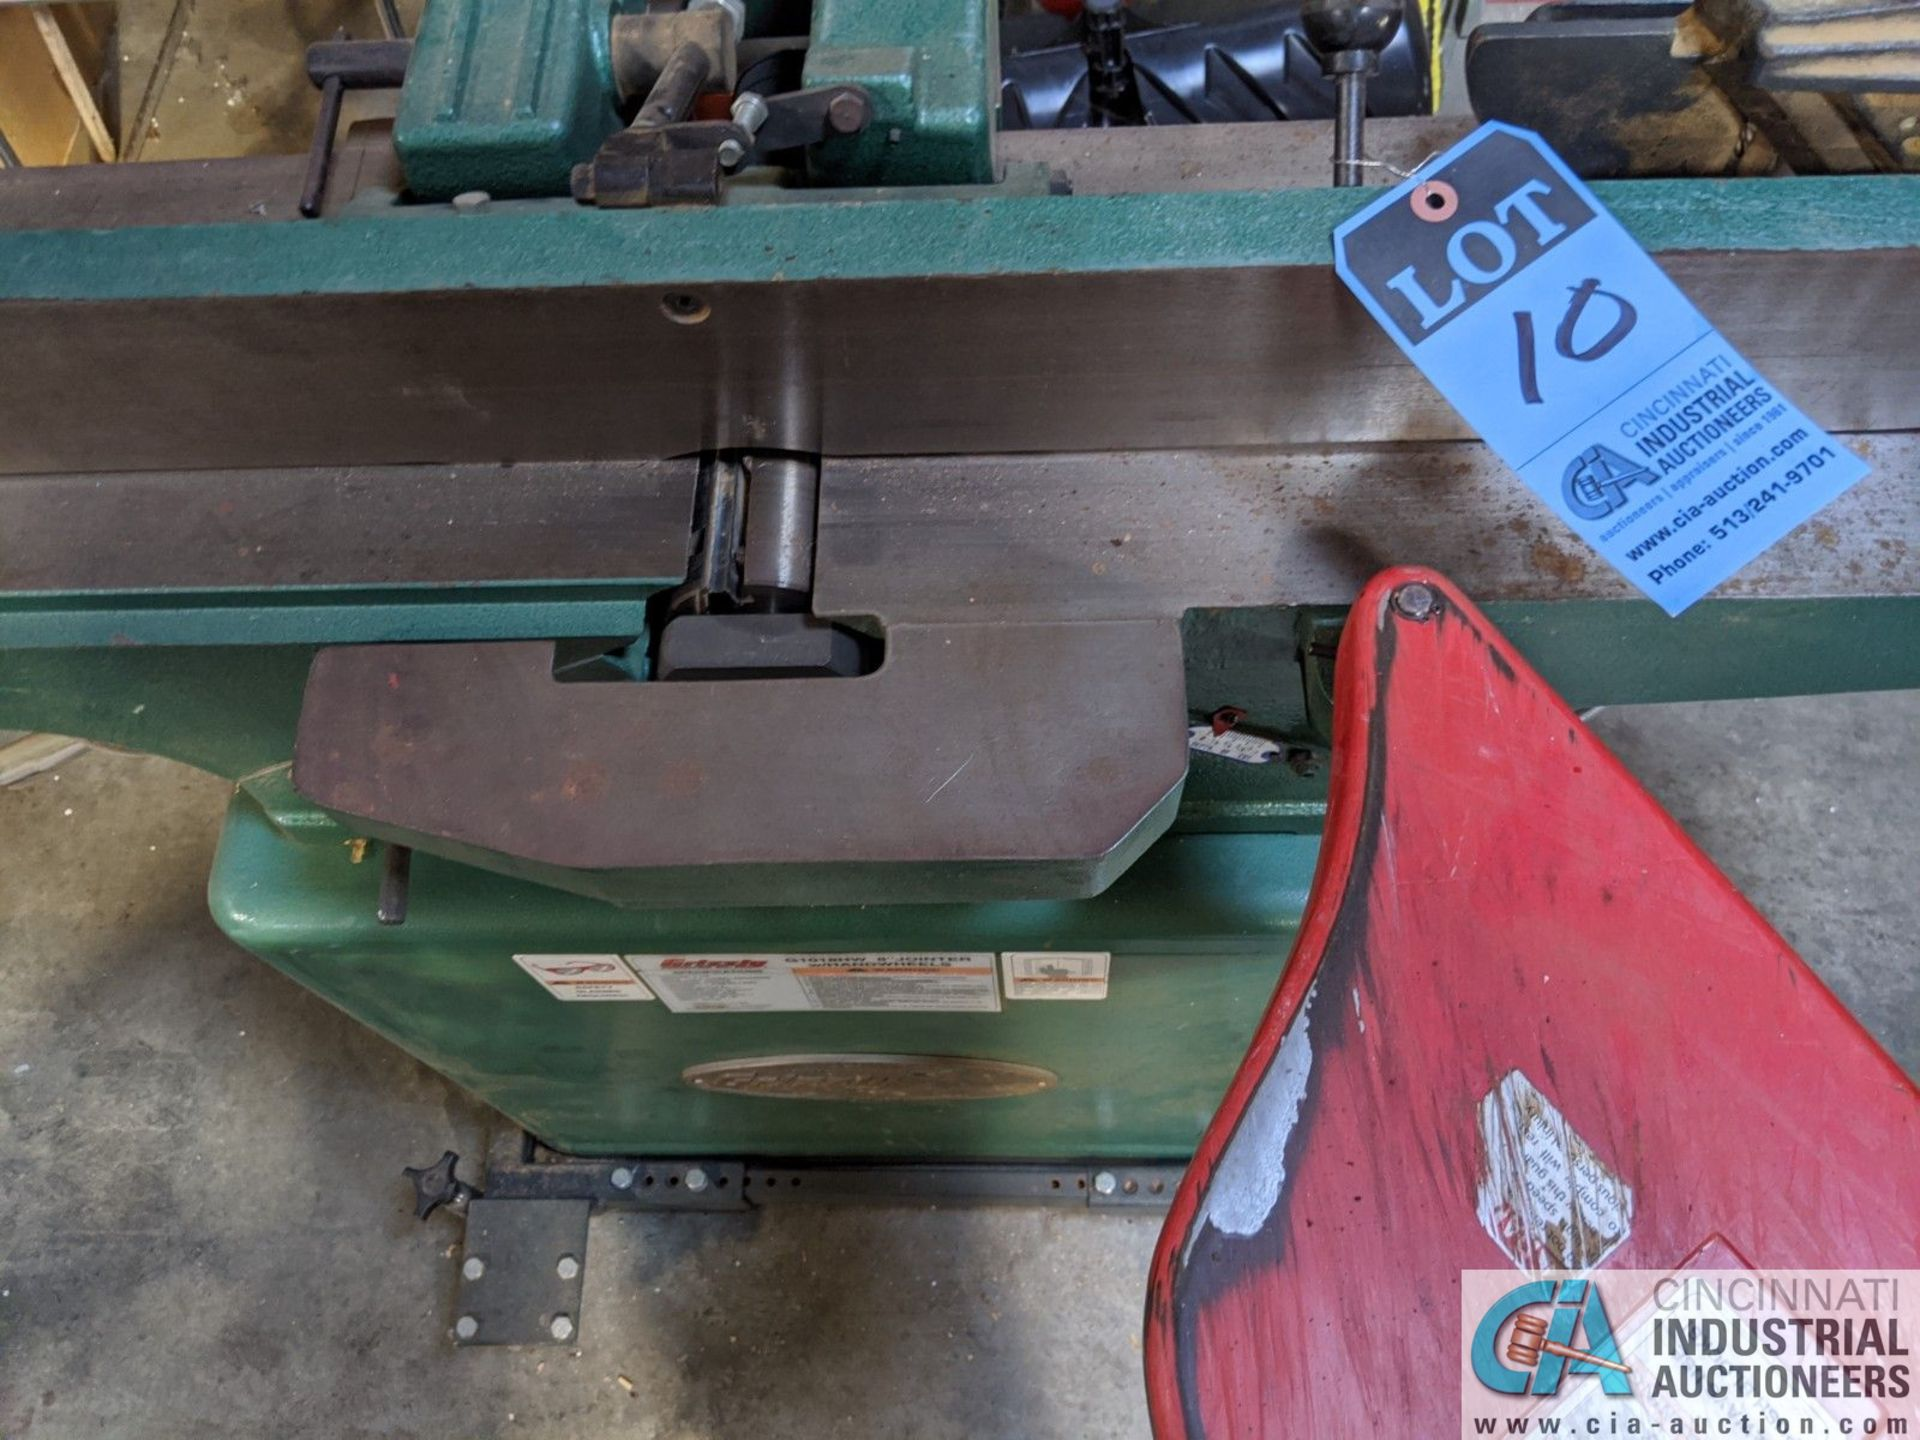 """8"""" GRIZZLY MODEL G1018HW JOINTER; S/N 6388108, 9"""" X 65"""" TABLE (8635 East Ave., Mentor, OH 44060 - - Image 2 of 7"""